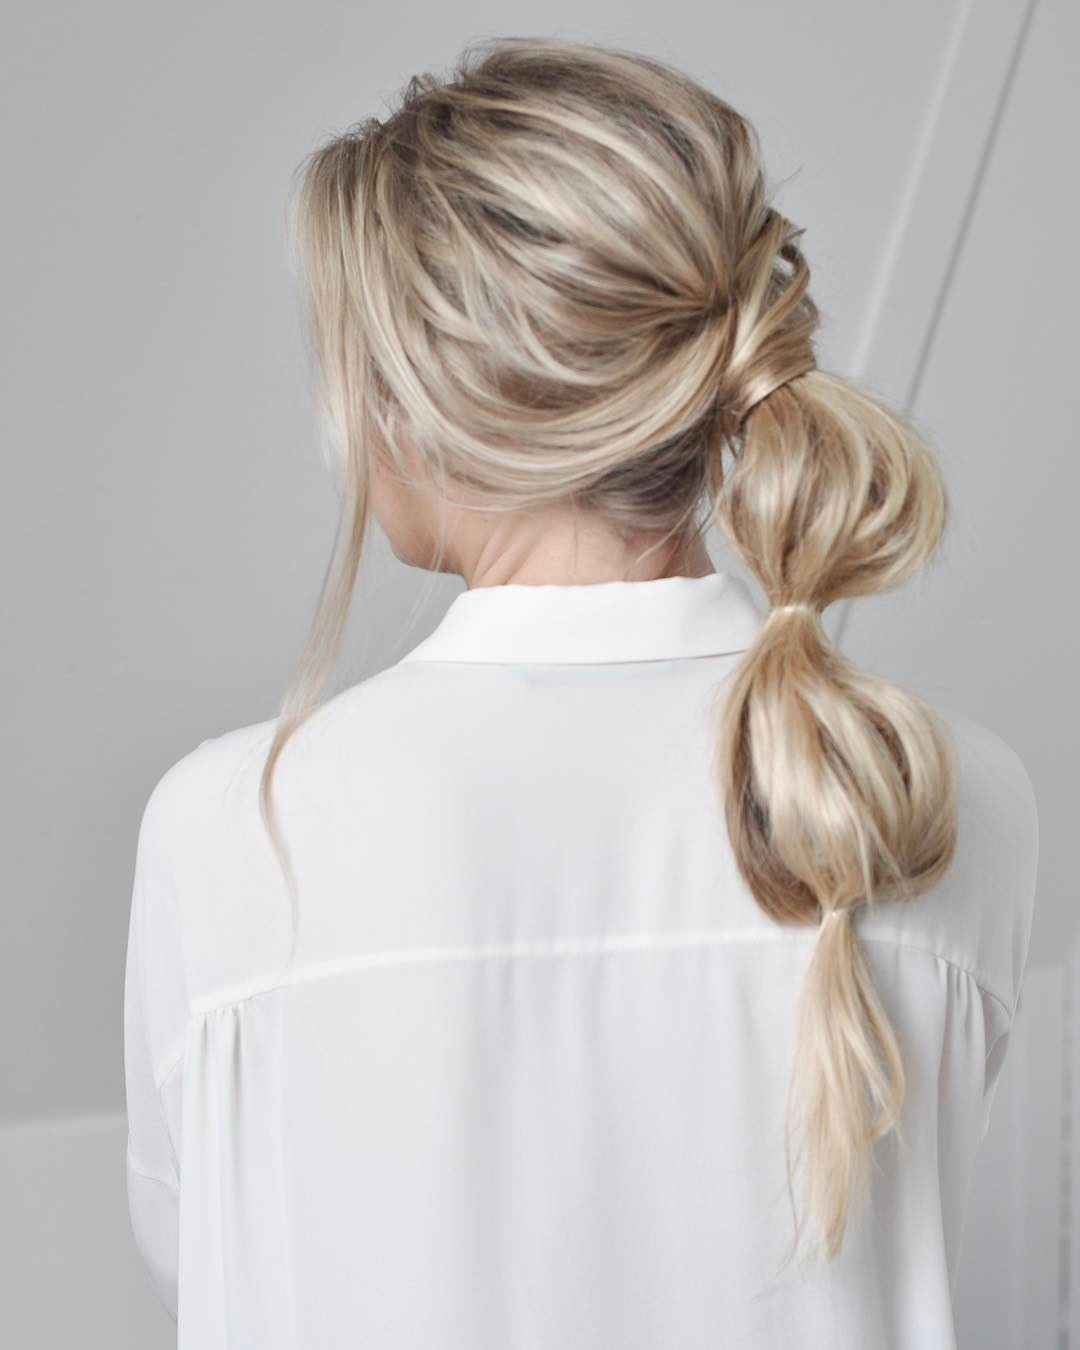 pony style hair 10 ponytail hairstyles pretty posh playful amp vintage 4673 | ponytail hair styles for women best ponytail hairstyle designs 4